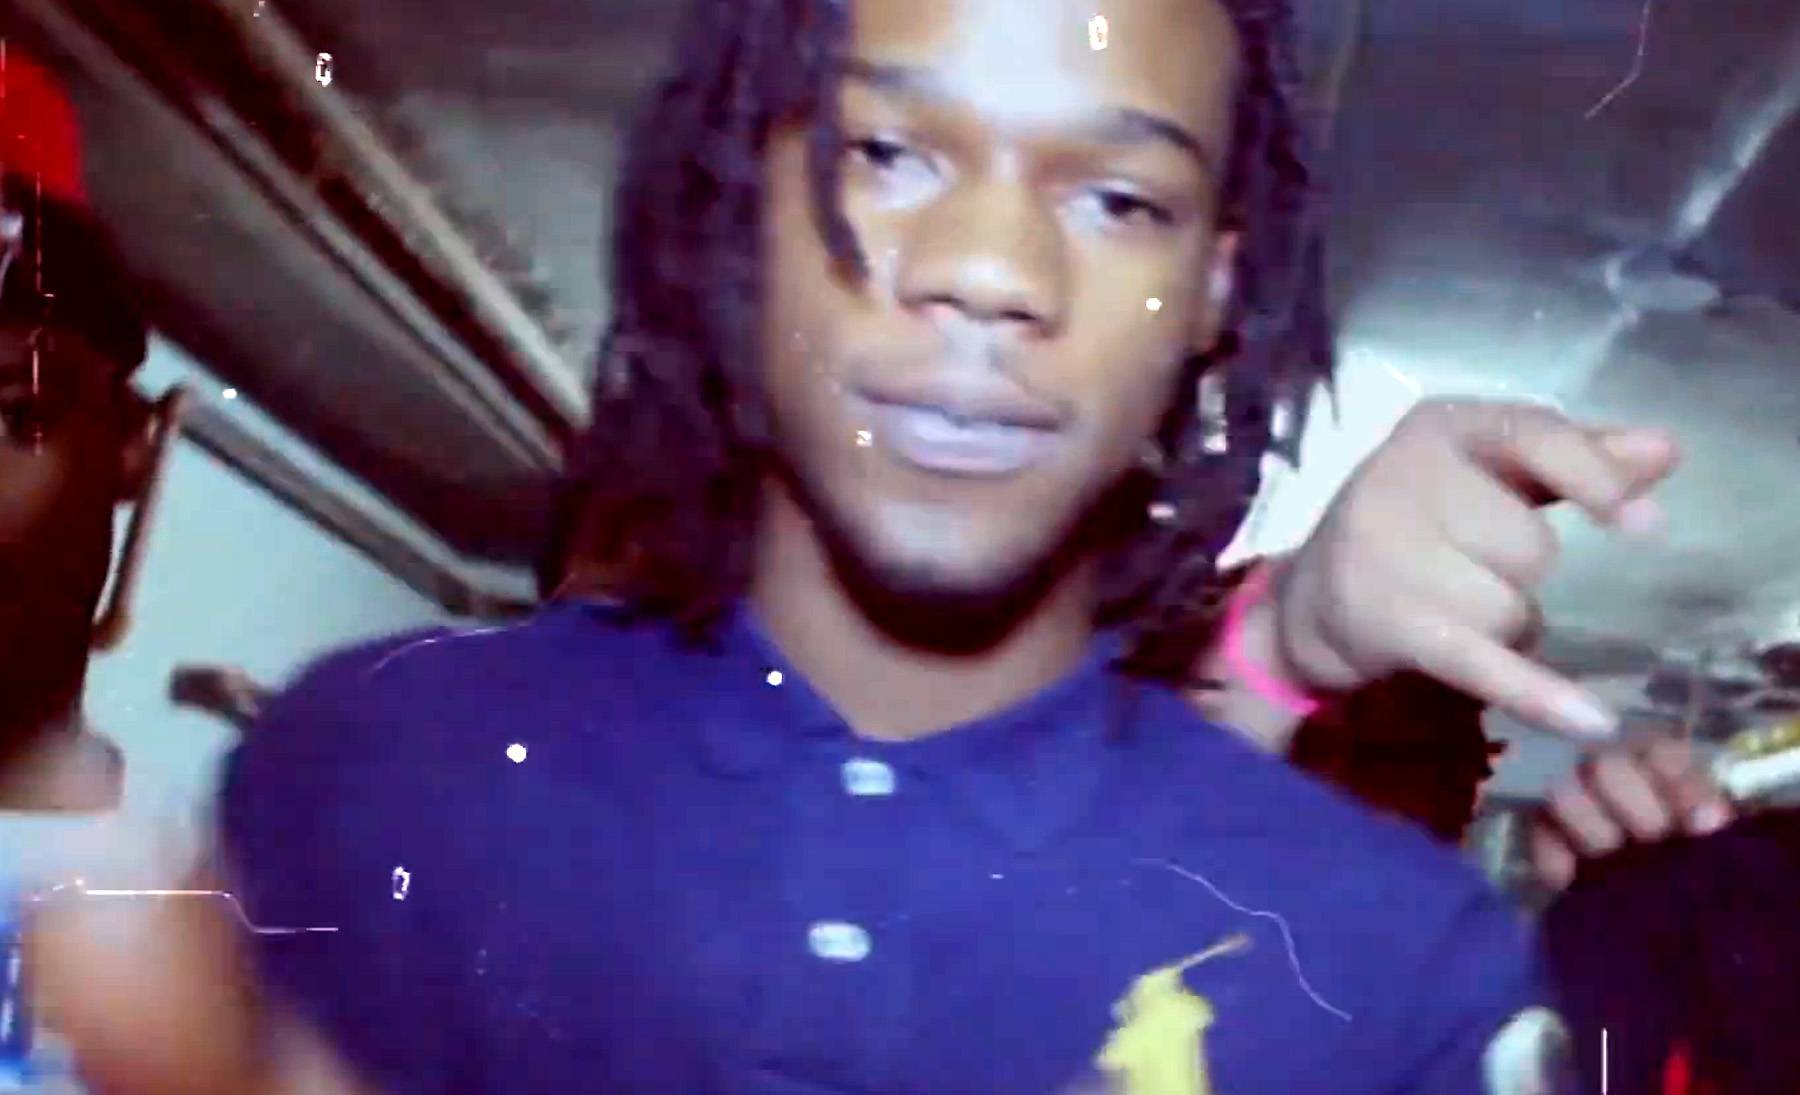 """Don Darius - Ladarius Brisco, aka Don Darius,was shot in the head and killed in December 2013.He had beefs with the Black Disciples and dissed them numerous times in his songs and YouTube videos. He often chanted """"B-D-K"""" is his rhymes, which means Black Disciple Killer. He was only 17 years old.(Photo: MoreMilli1 via YouTube.com)"""